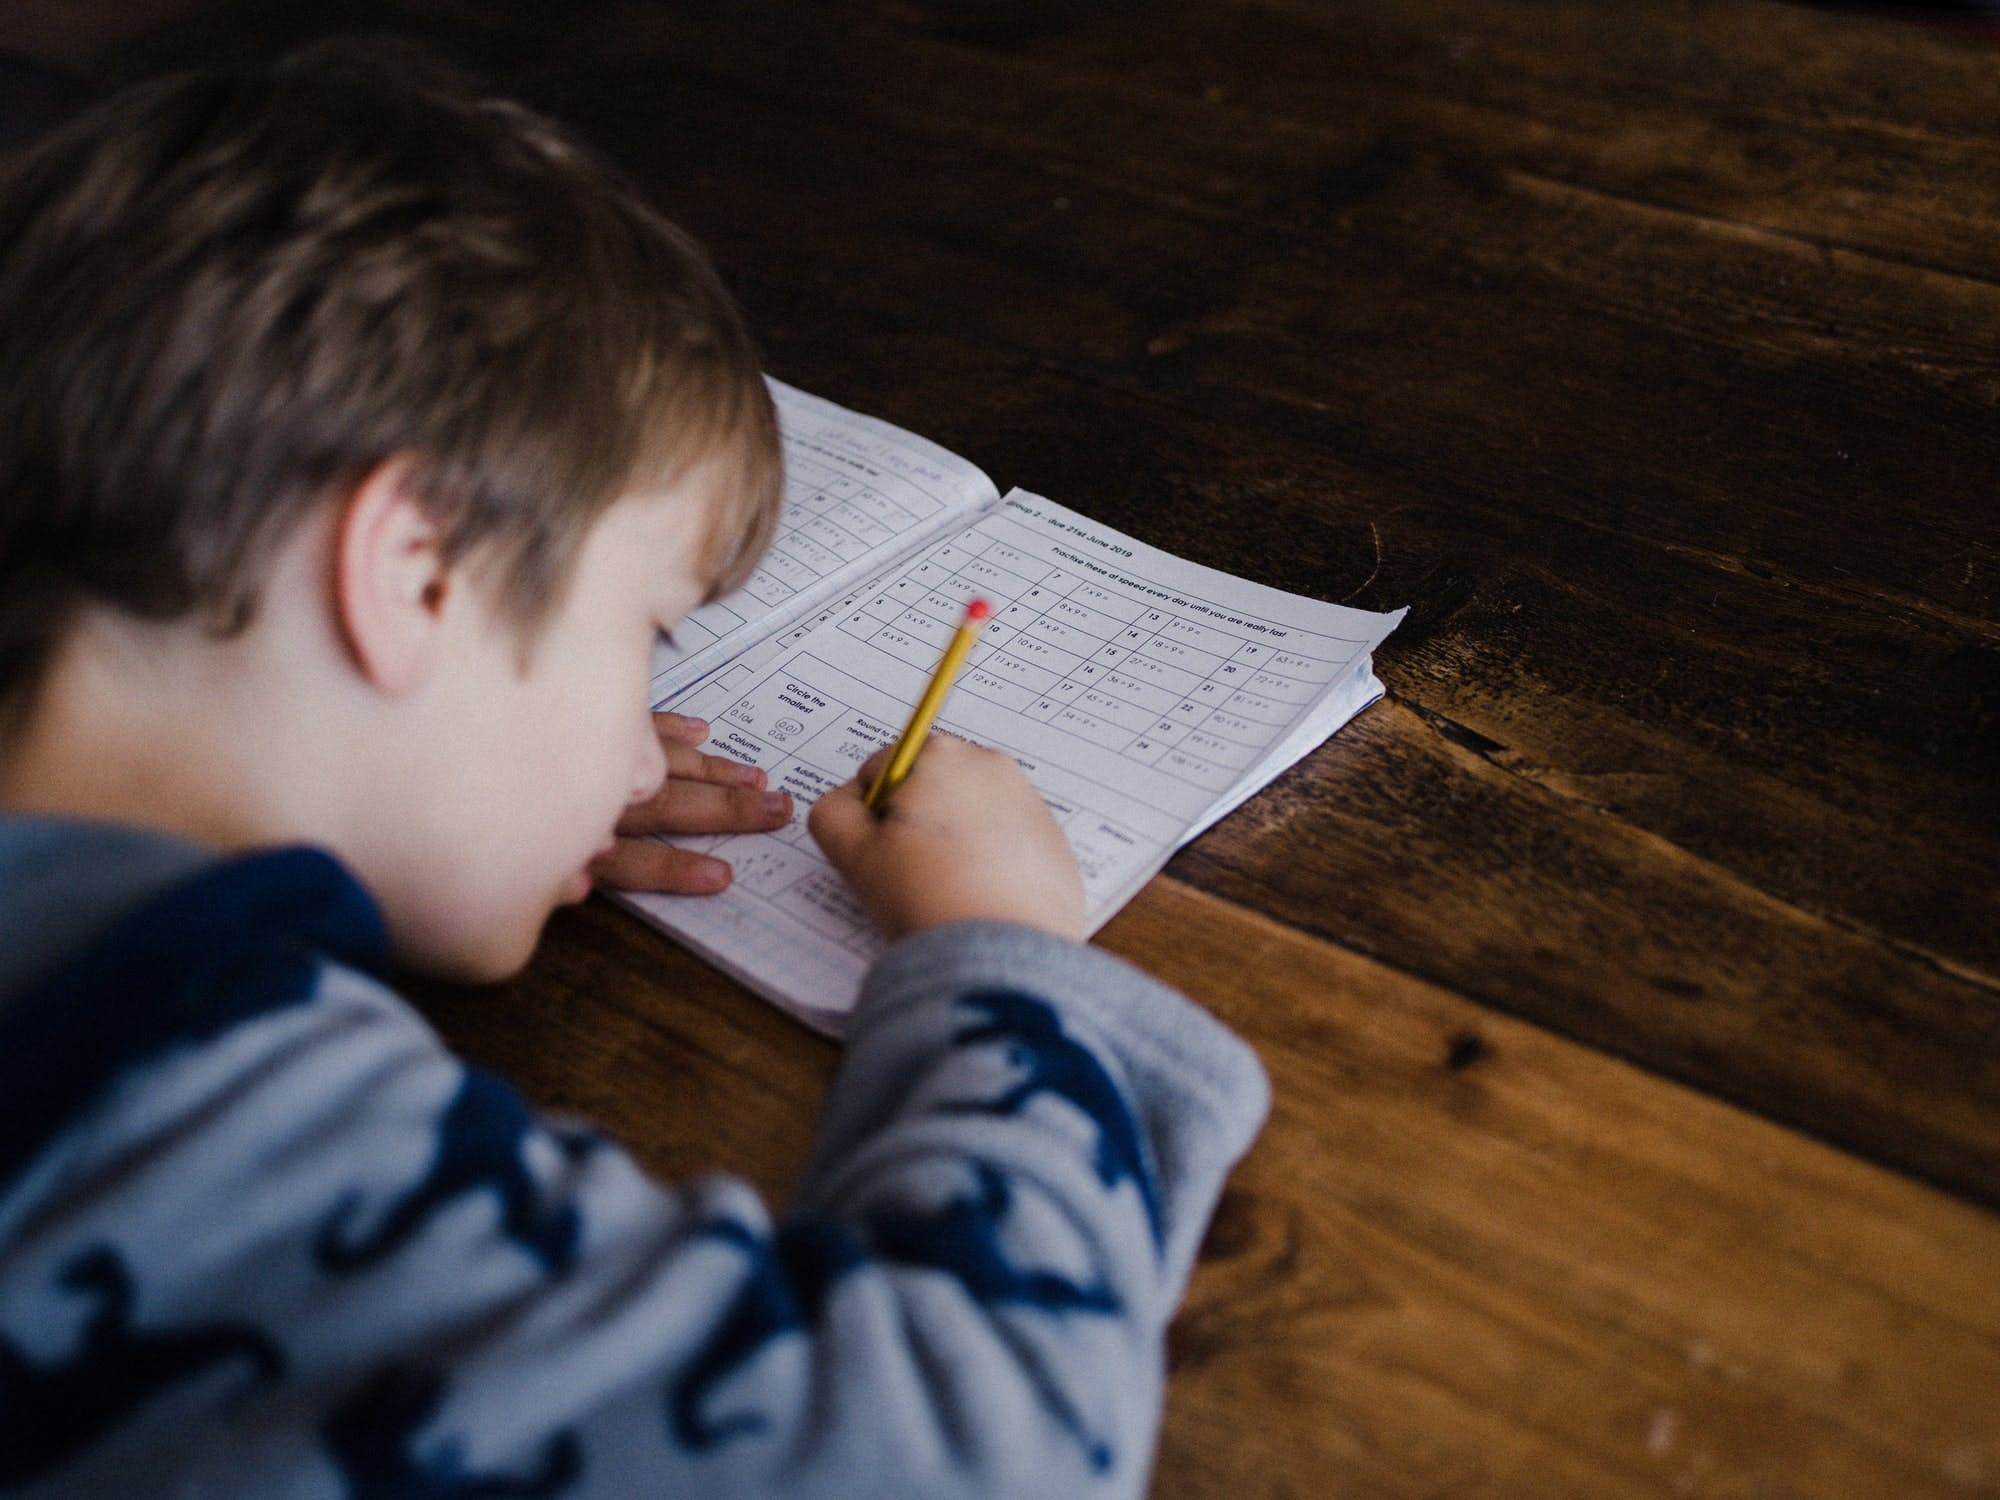 A picture of a young boy completing homework